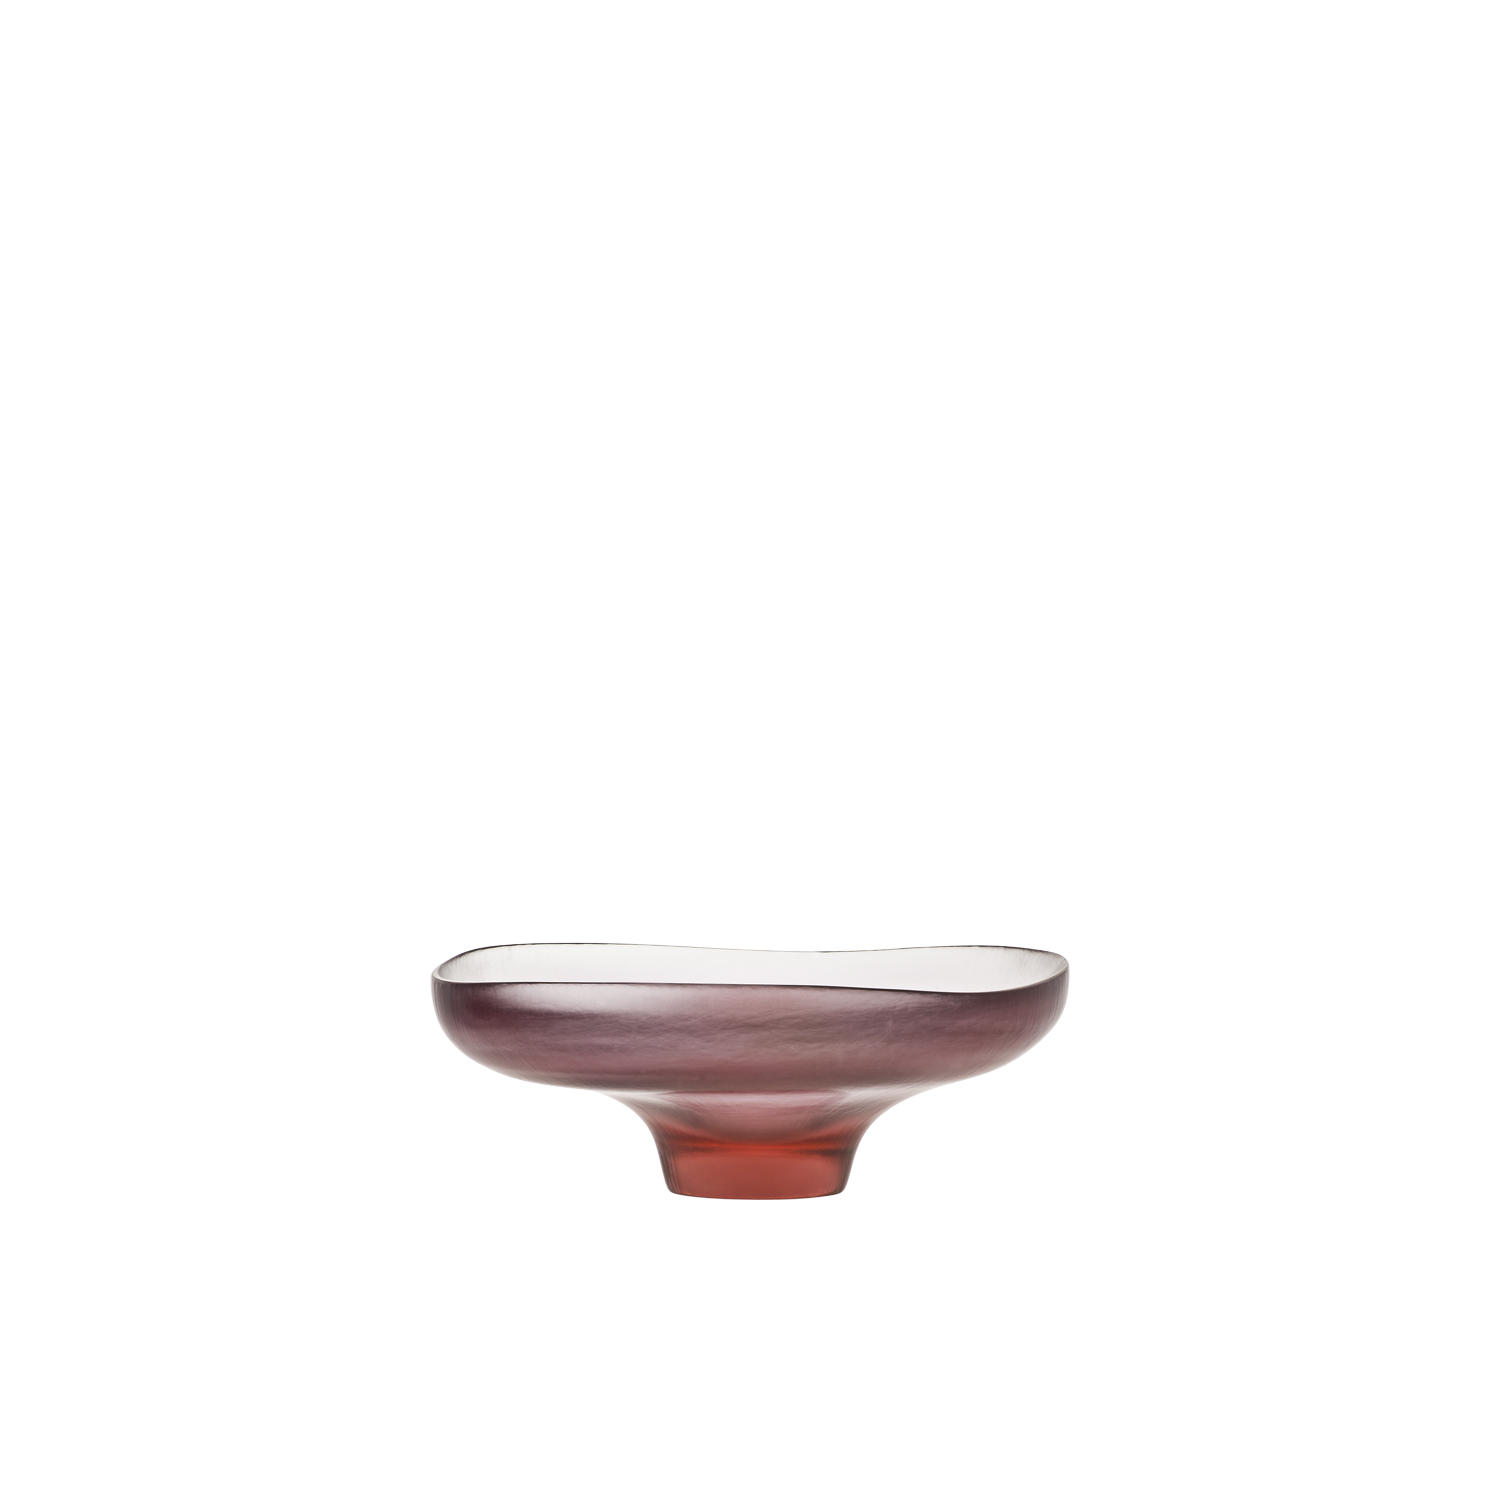 Battuti Canoe - It reveals itself as a shell gaping open, in tones of Crystal, Aquamarine and shaded pink Alexandrite. Its translucent appearance is the result of the skill and hard work of the master glassblowers, who skillfully grind the glass to lend it a unique slightly slubbed texture | Matter of Stuff